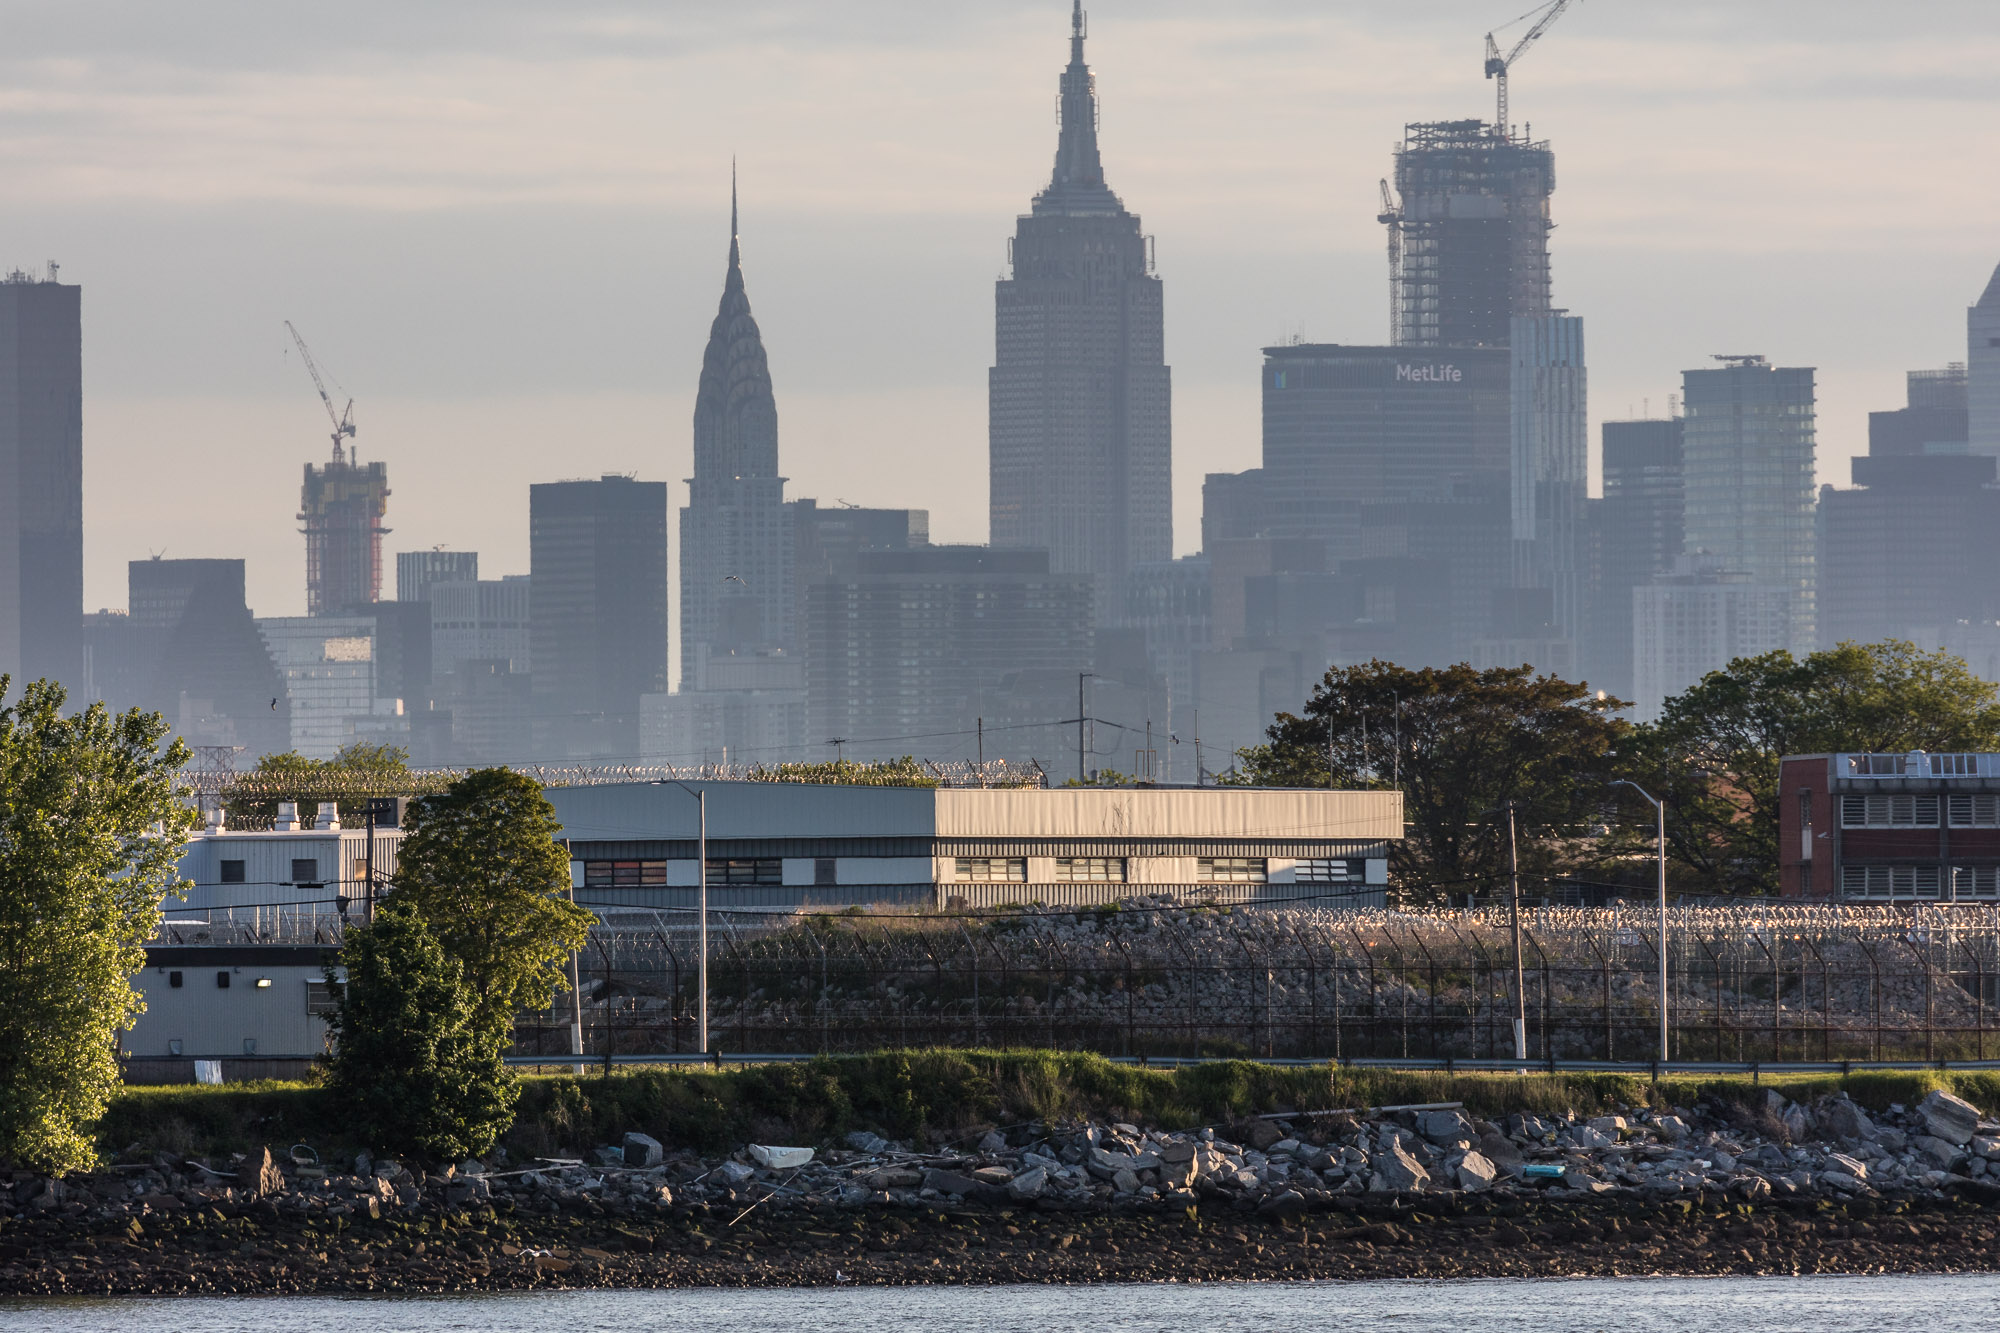 A jail on Rikers Island surrounded by barbed wire with silhouetted skyscrapers and buildings in the background.